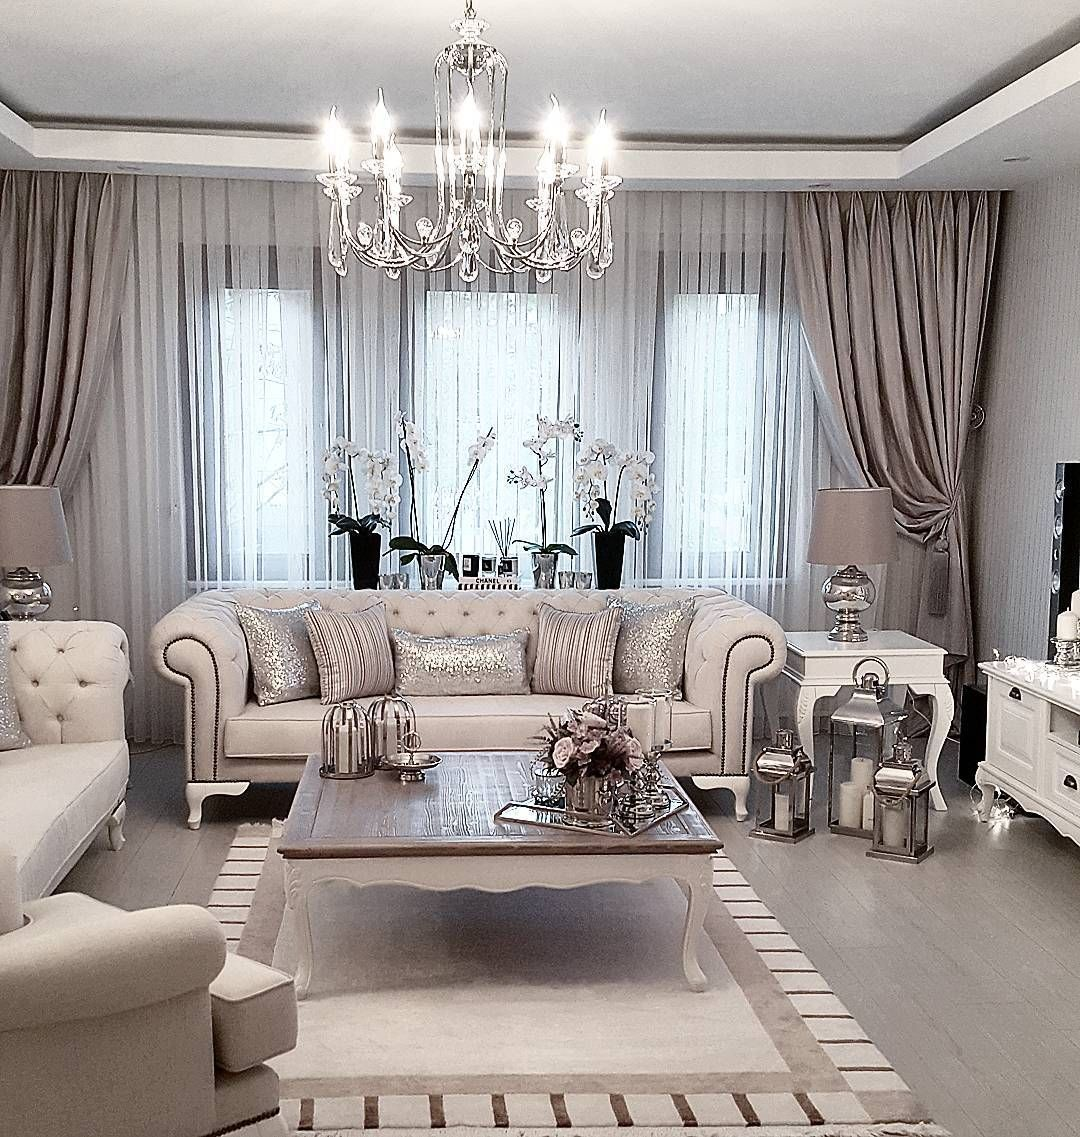 15 Stylish Living Room Decor Ideas Update Your Living: 53 Living Room Curtain Ideas To Upgrade Your Interior